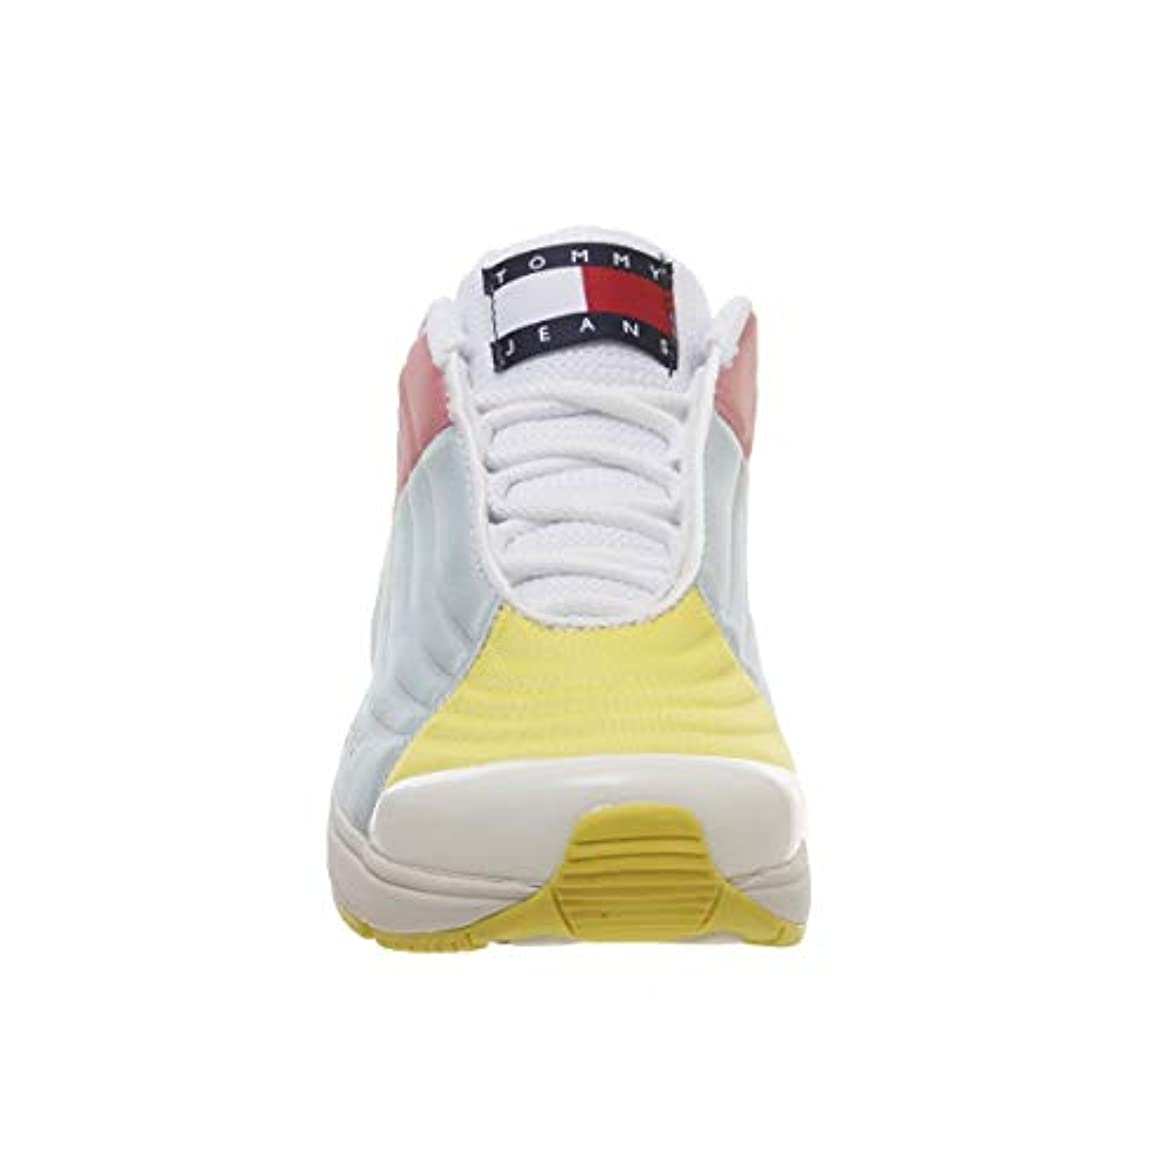 Tommy Hilfiger Sneaker Colorblock Woman